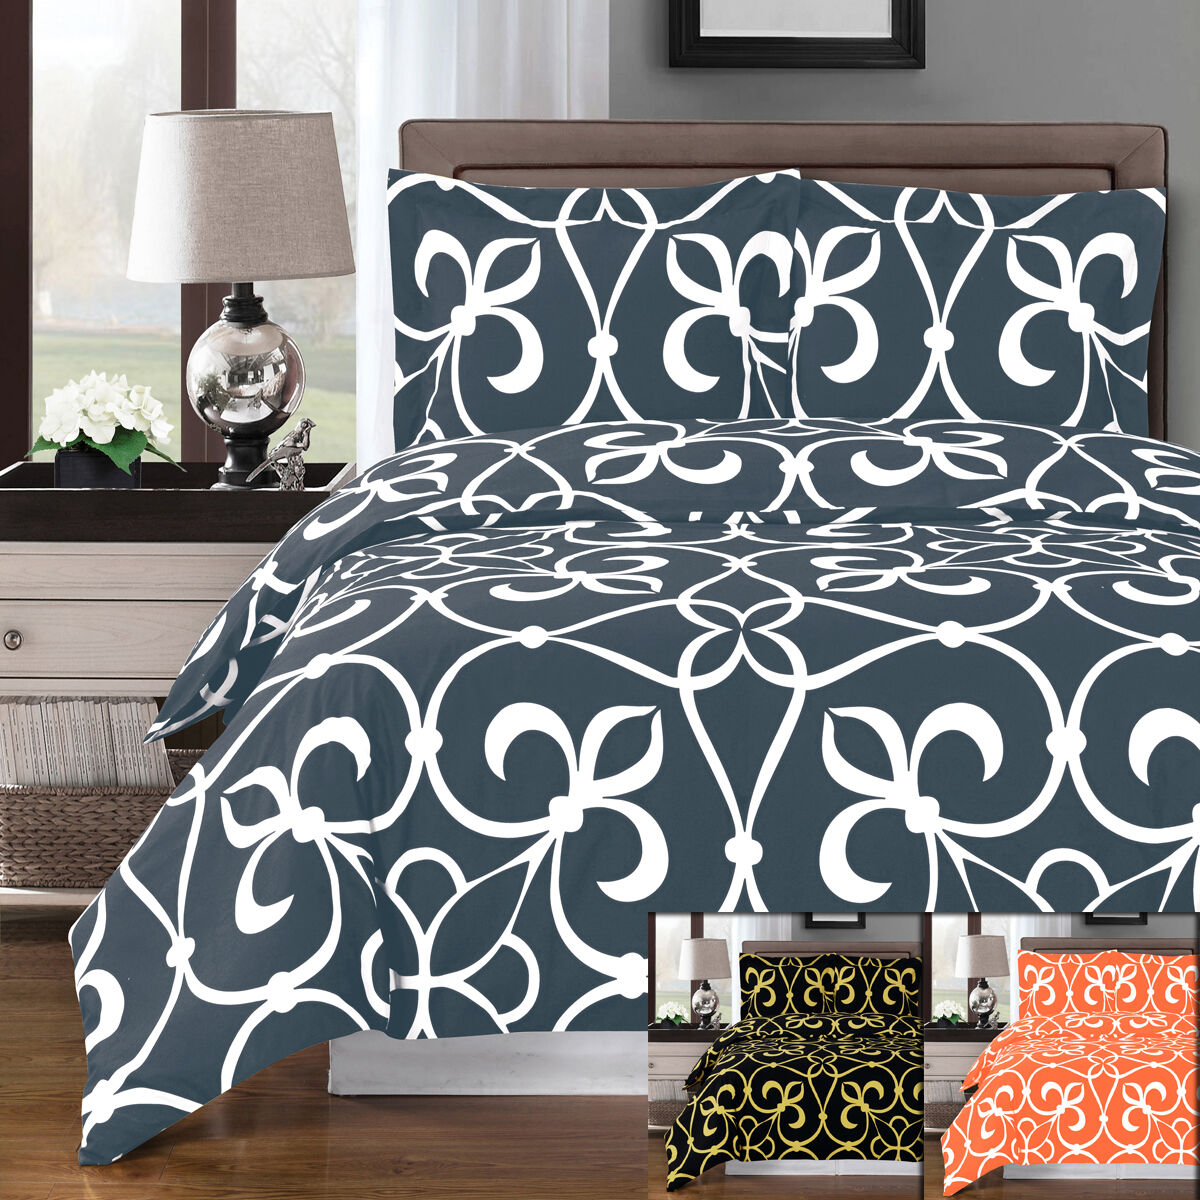 3PC Vibrant Victoria 300 Thread Count Combed Cotton Duvet Cover Set Combed